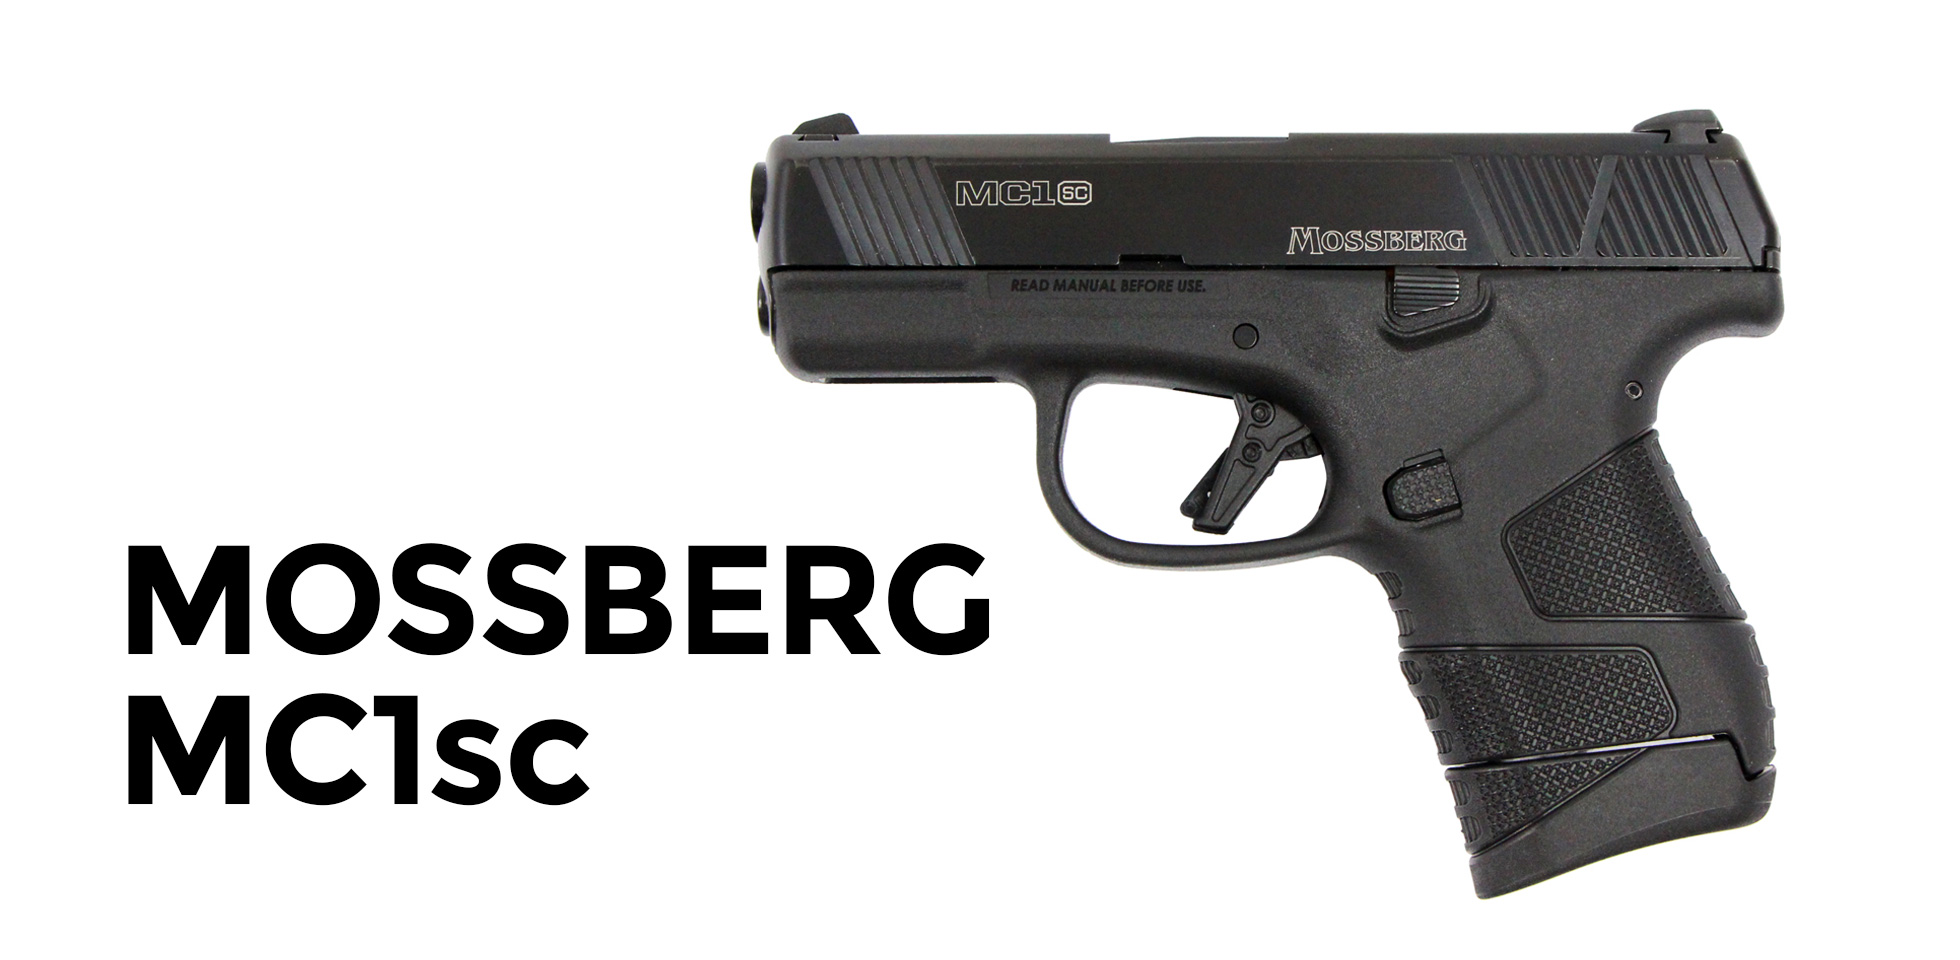 Mossberg MC1sc pistols are a great 9mm for the price